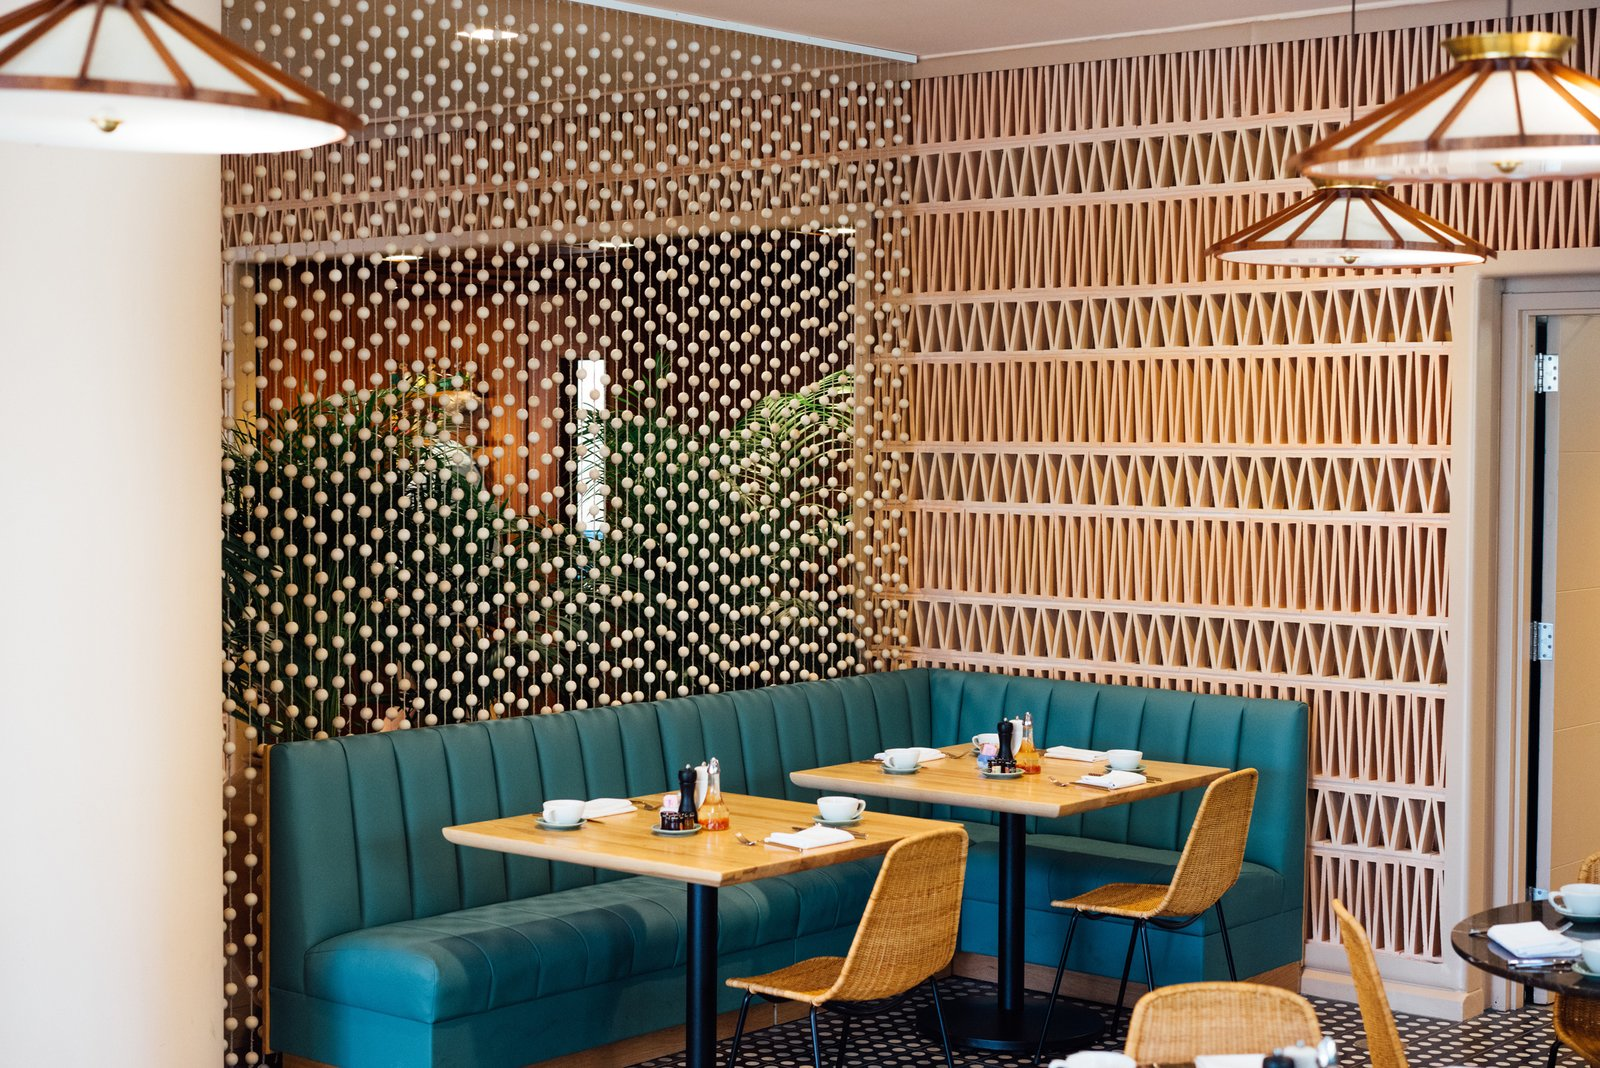 Along with creative craft cocktails coming from the bar, the on-site restaurant serves Pacific Rim and American comfort food. Jewelry designer Anne Korte of AK Studio made the custom curtain for the project. Waikiki's Midcentury Revival Continues to Flourish With a New Jet Set-Inspired Hotel - Photo 14 of 18